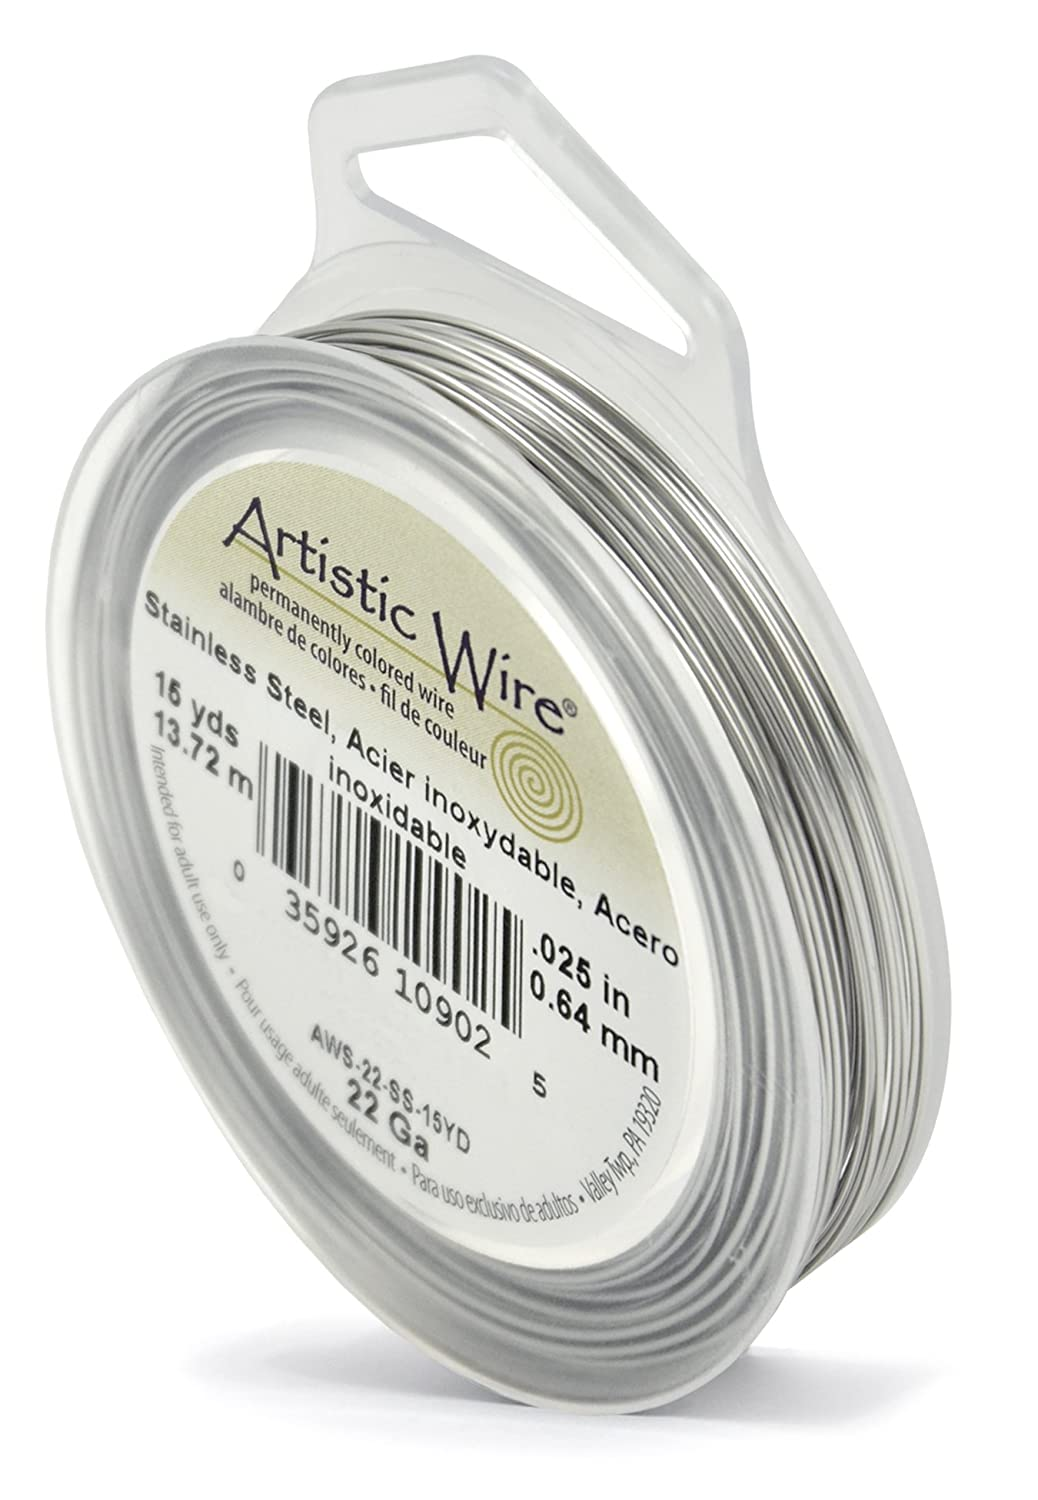 Beadalon AWS-22-SS-15YD 22 Gauge Artistic Wire, Stainless Steel, 15-Yard